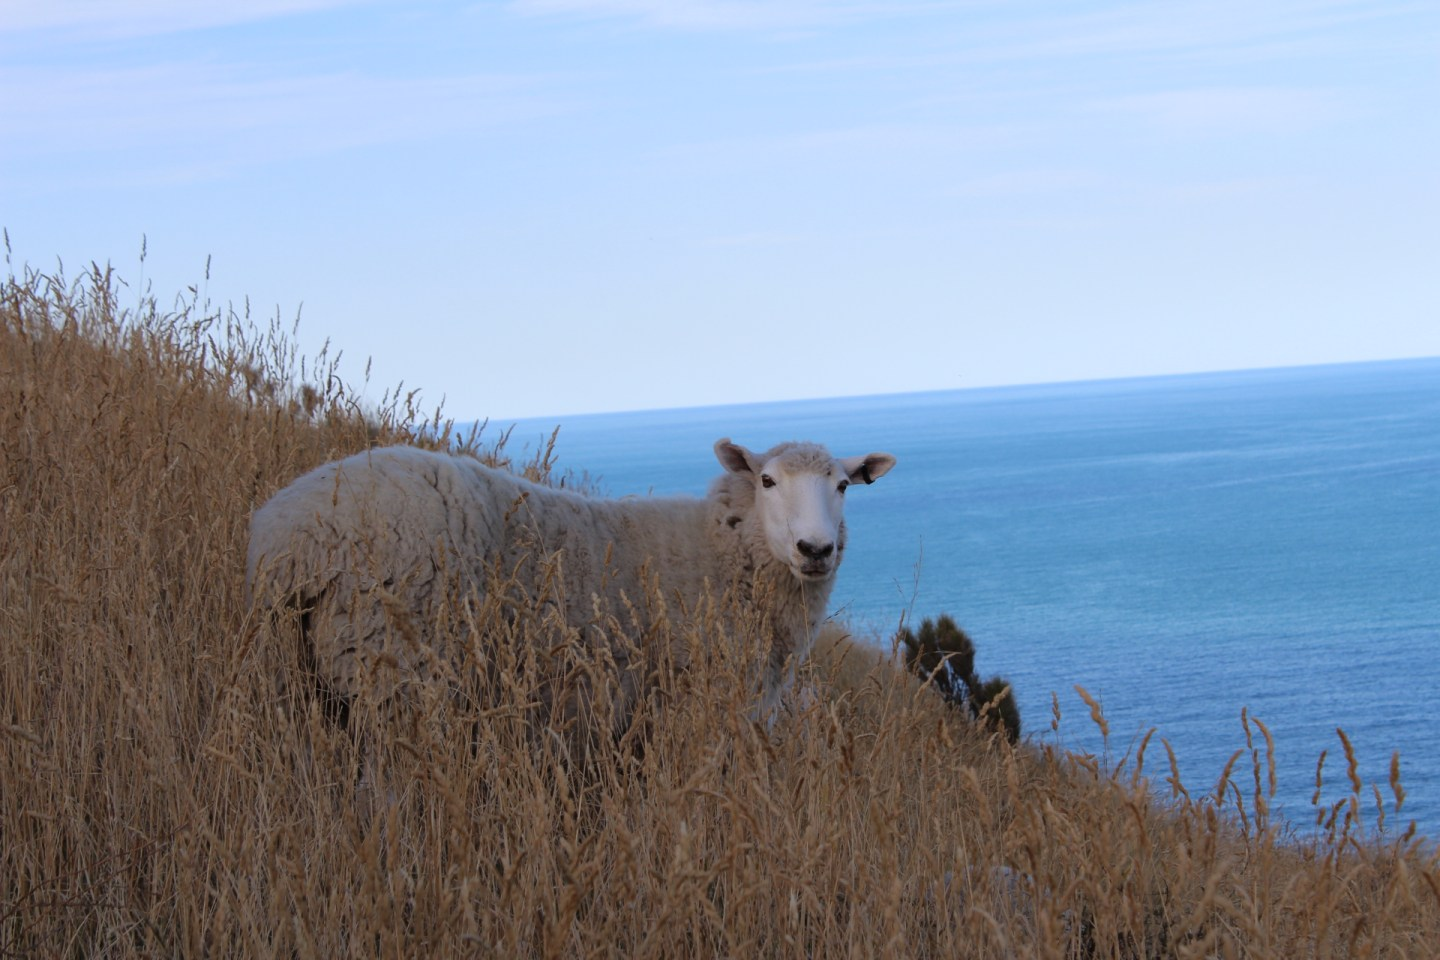 A sheep looks at the camera in a field overlooking the ocean